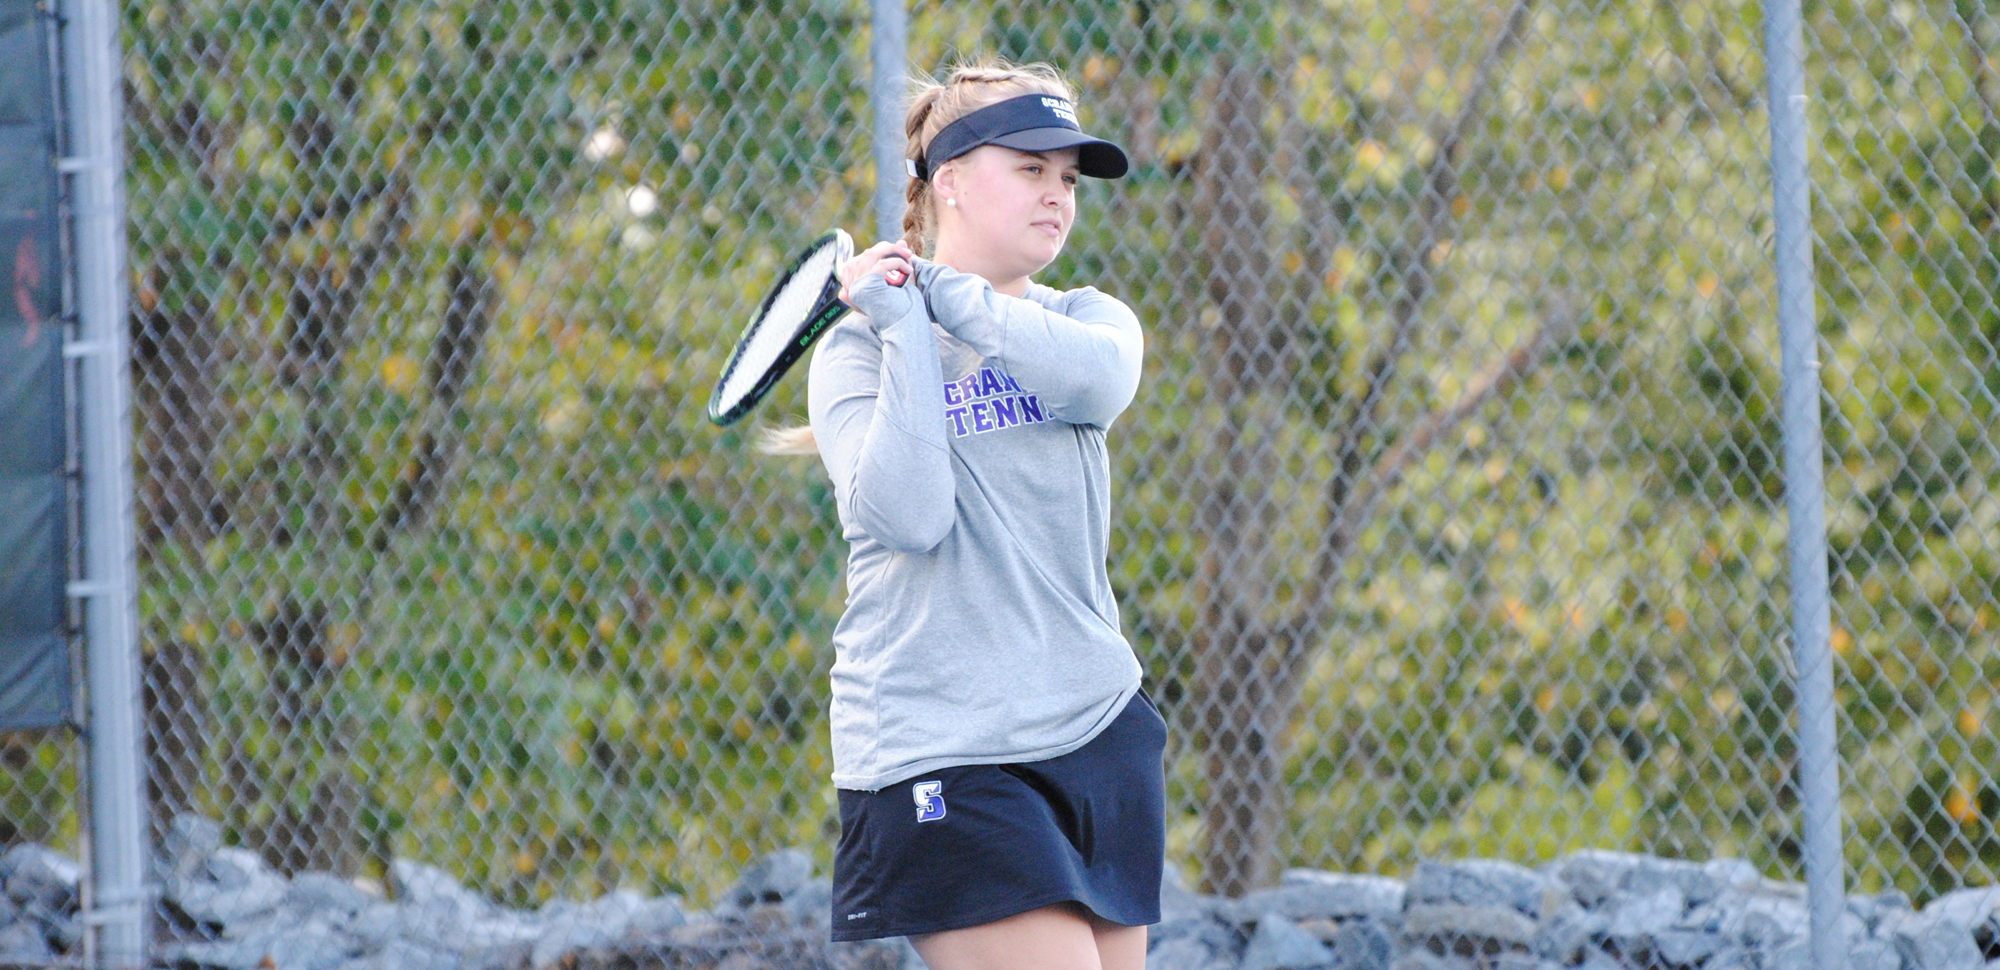 Senior Emilia Jakubek's win at number two singles clinched an eventual 5-4 win for the women's tennis team at Catholic on Saturday.